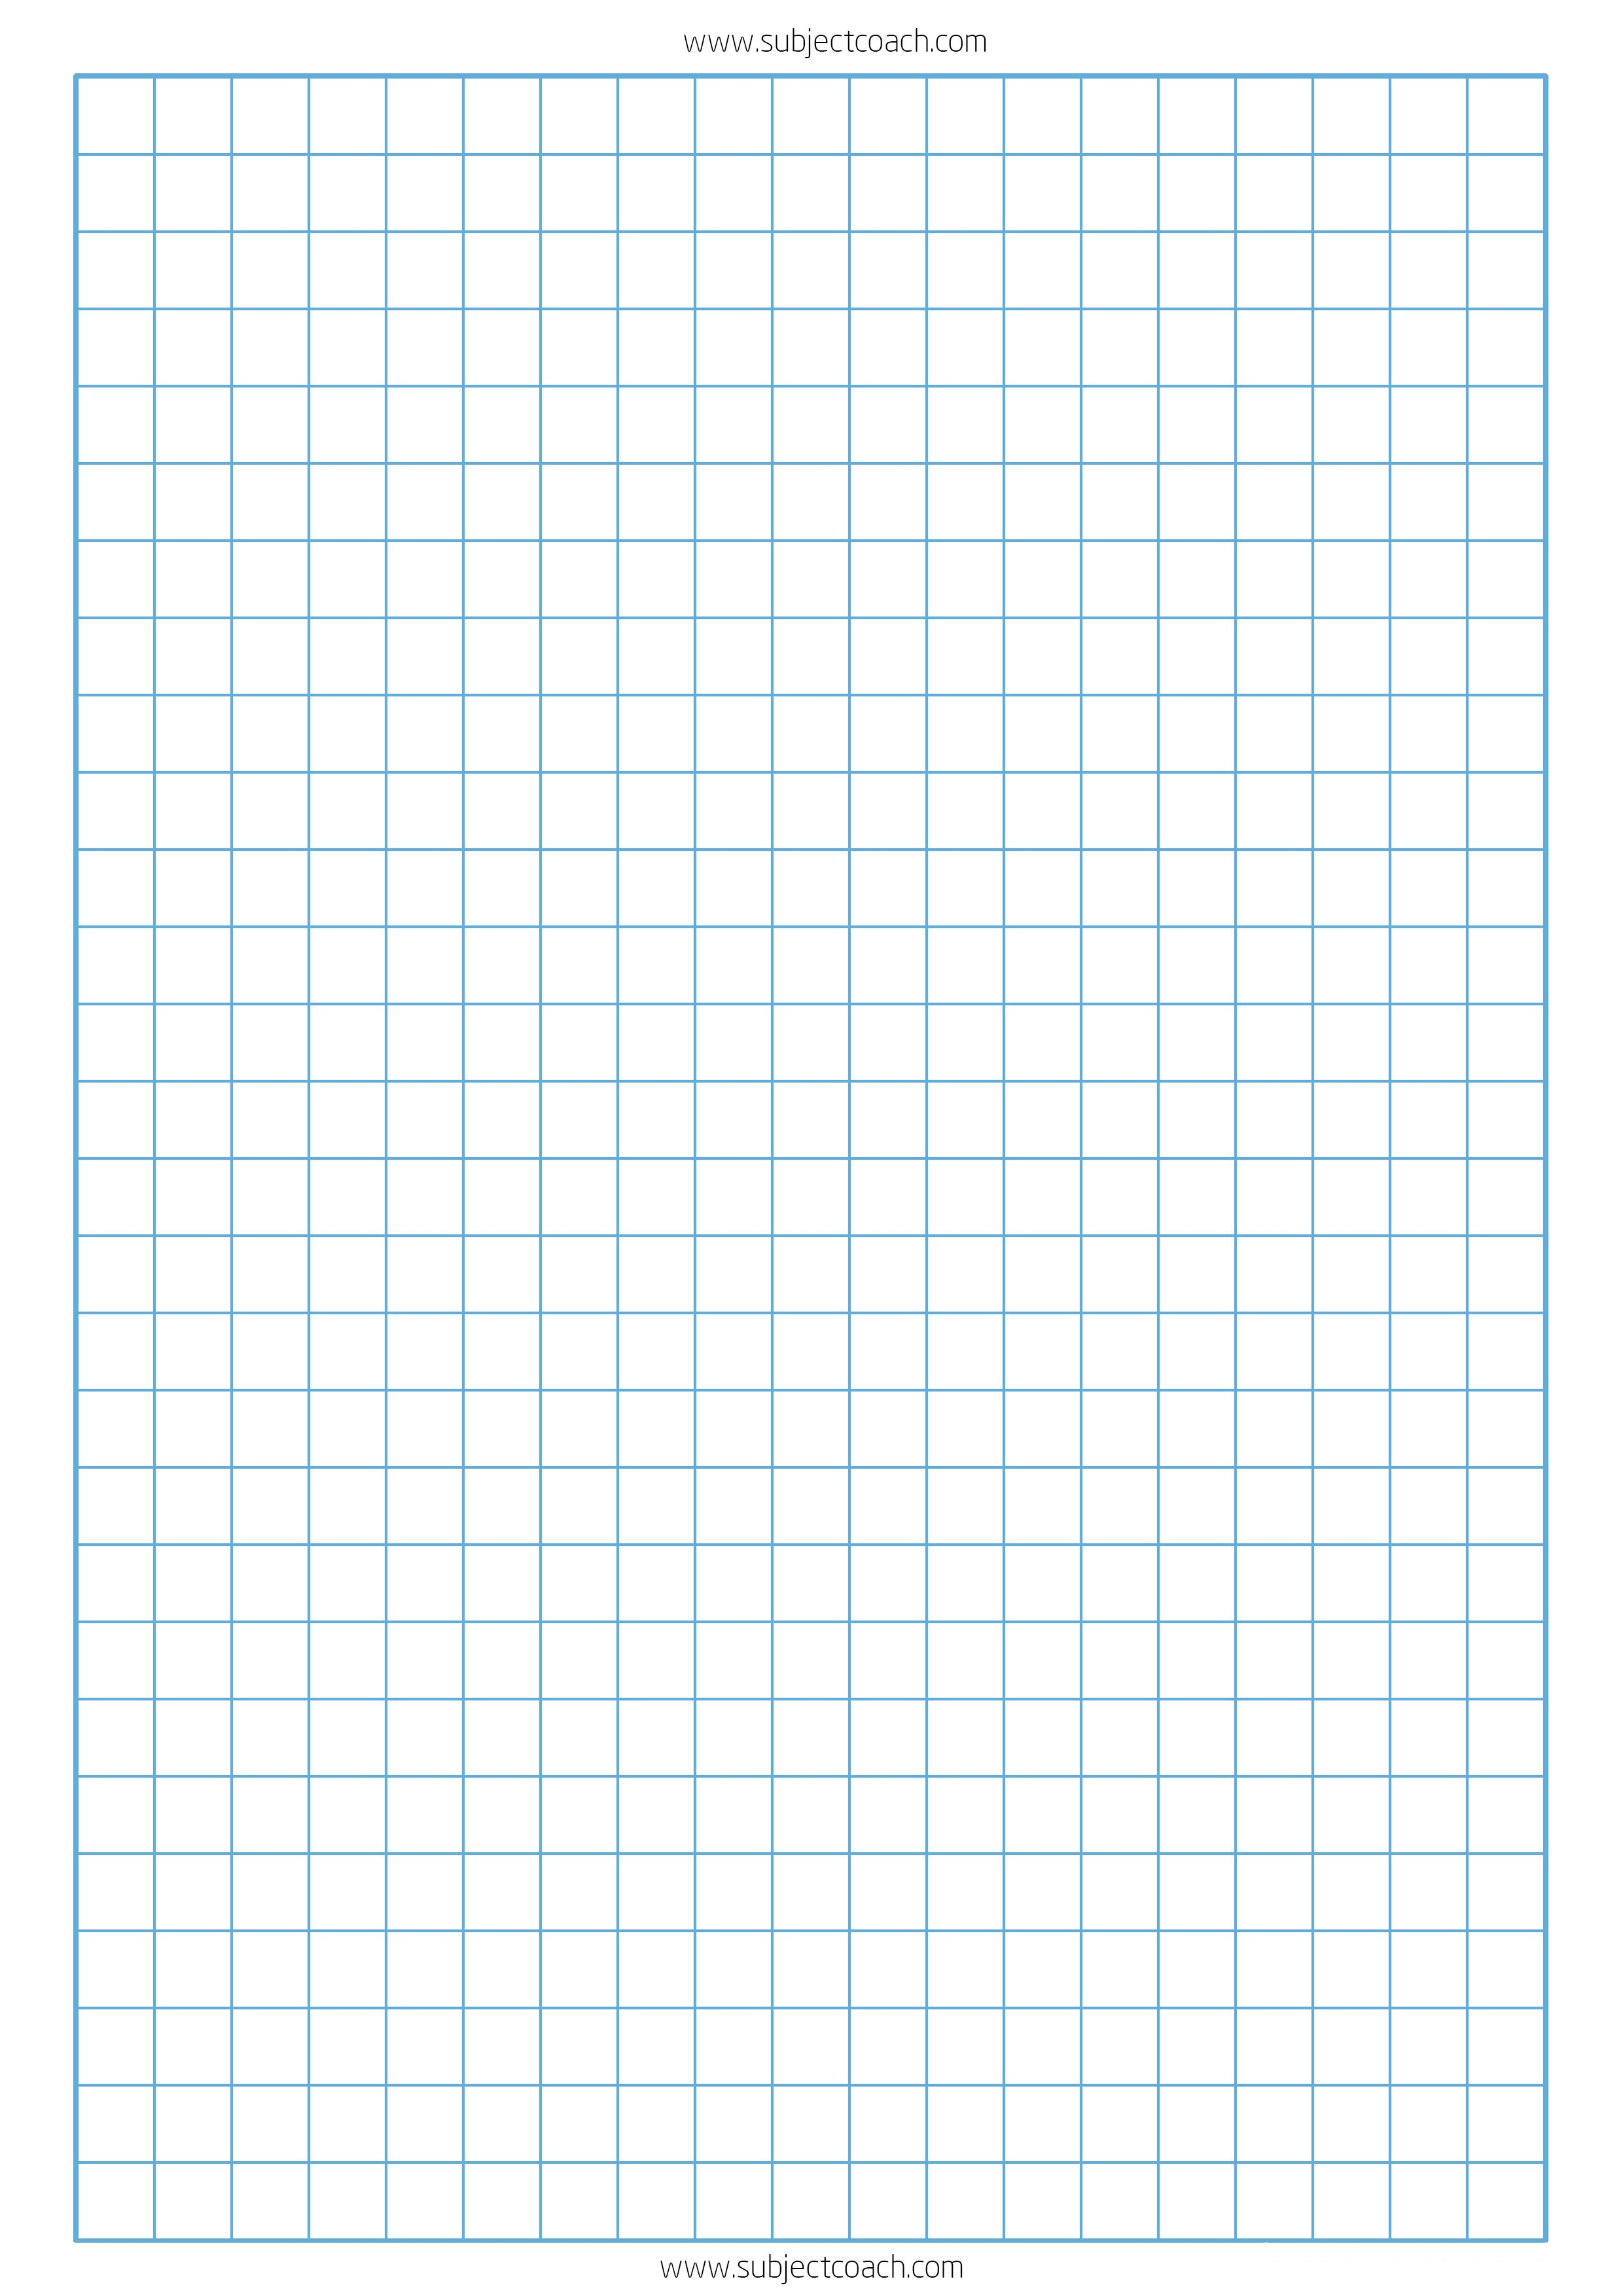 Free Printable Graph Paper 1Cm For A4 Paper | Subjectcoach - Free Printable Graph Paper